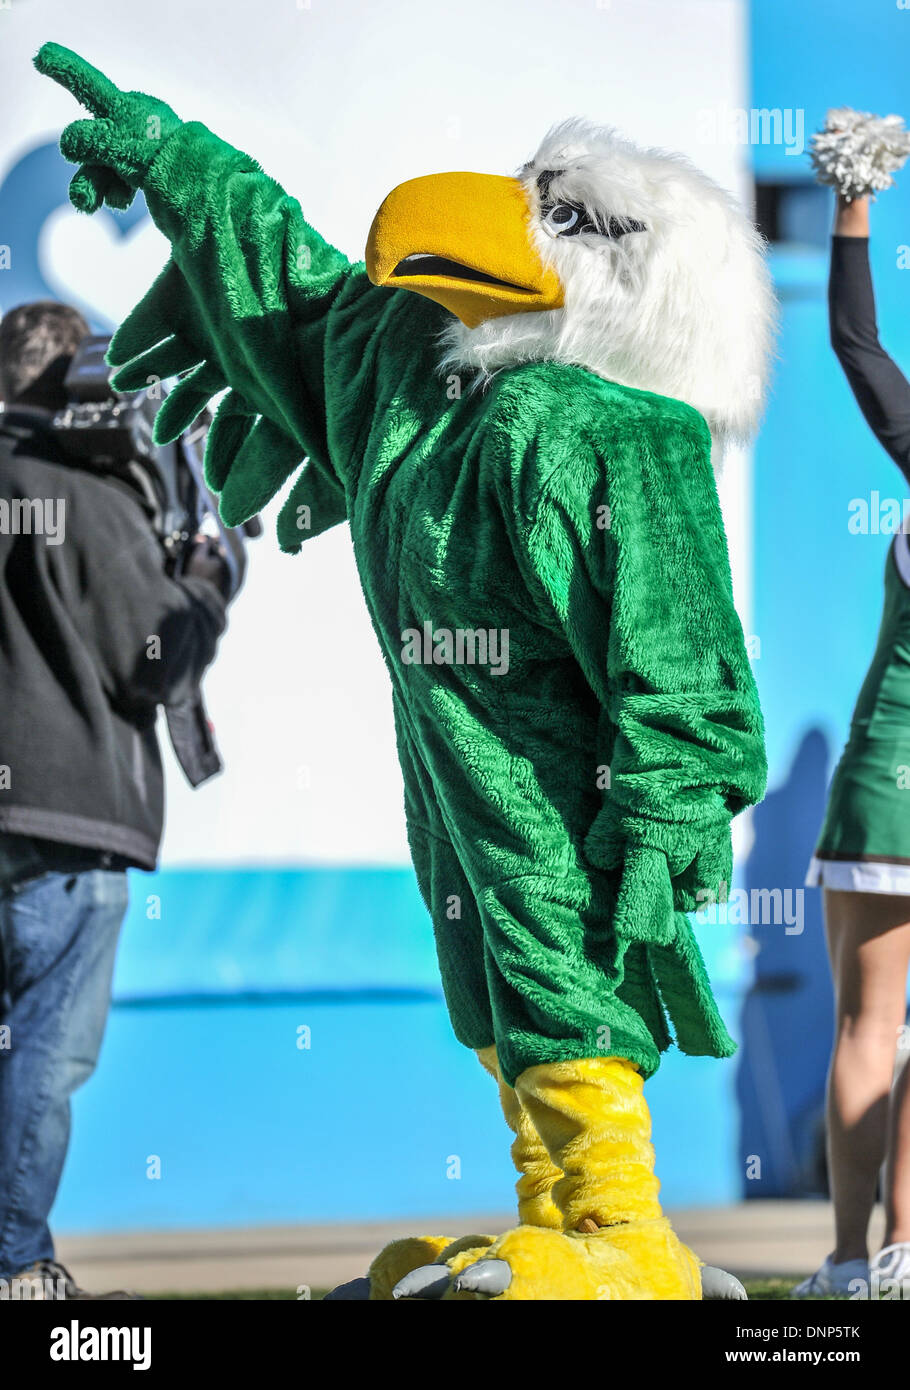 Dallas Texas Usajanuary 1st 2014 North Texas Eagle Mascot In Stock Photo Alamy